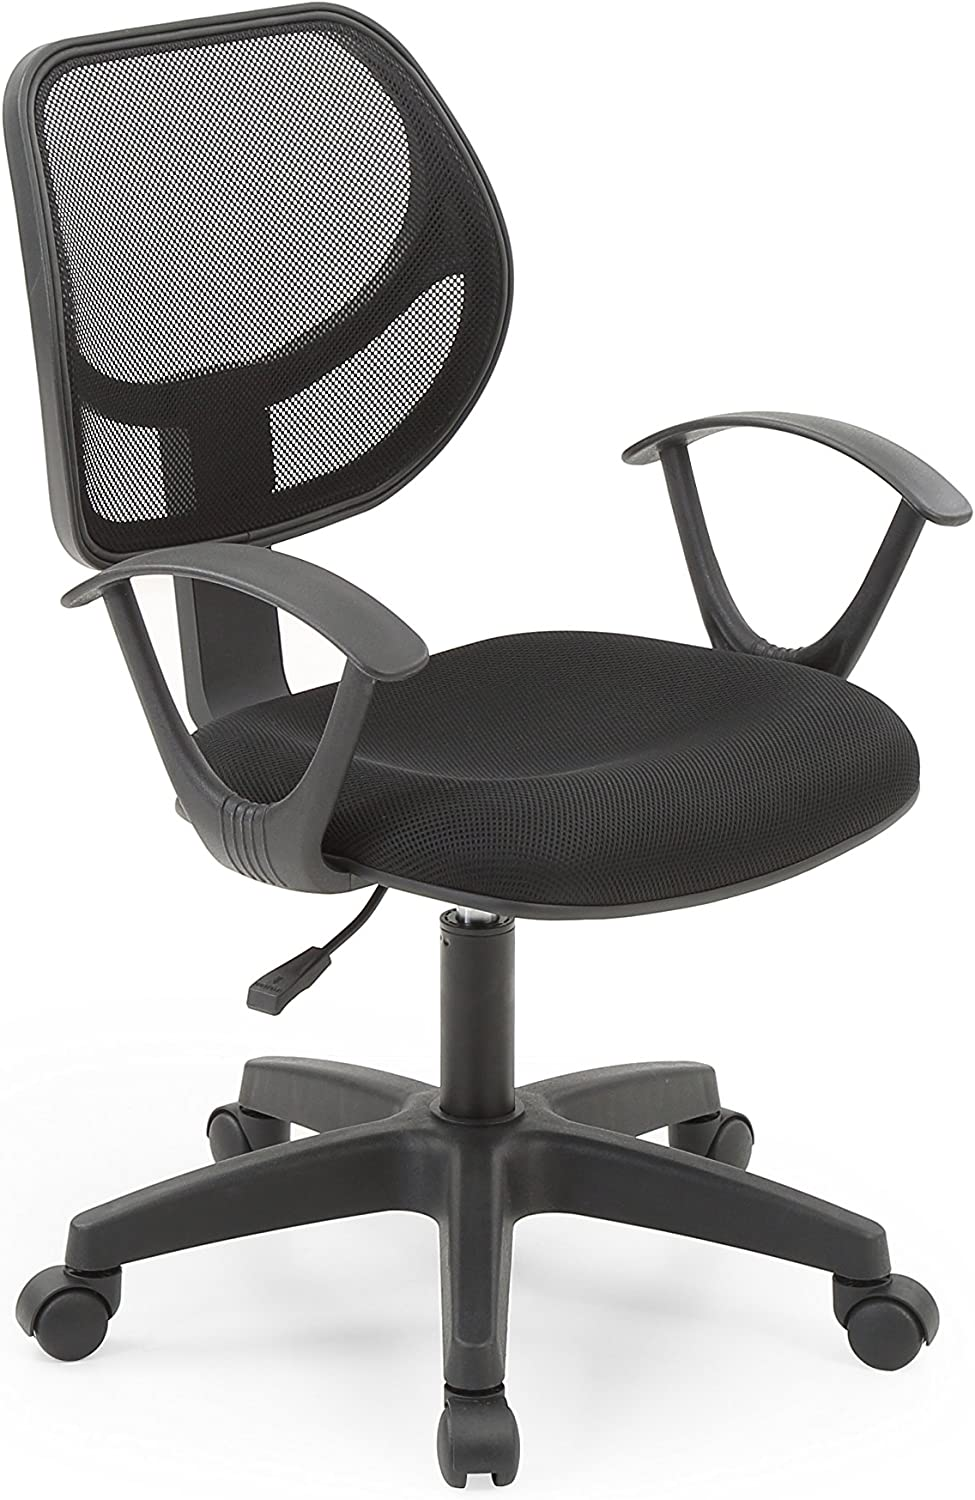 Hodedah Mesh, Mid-Back, Adjustable Height, Swiveling Task Chair with Padded Seat in Black